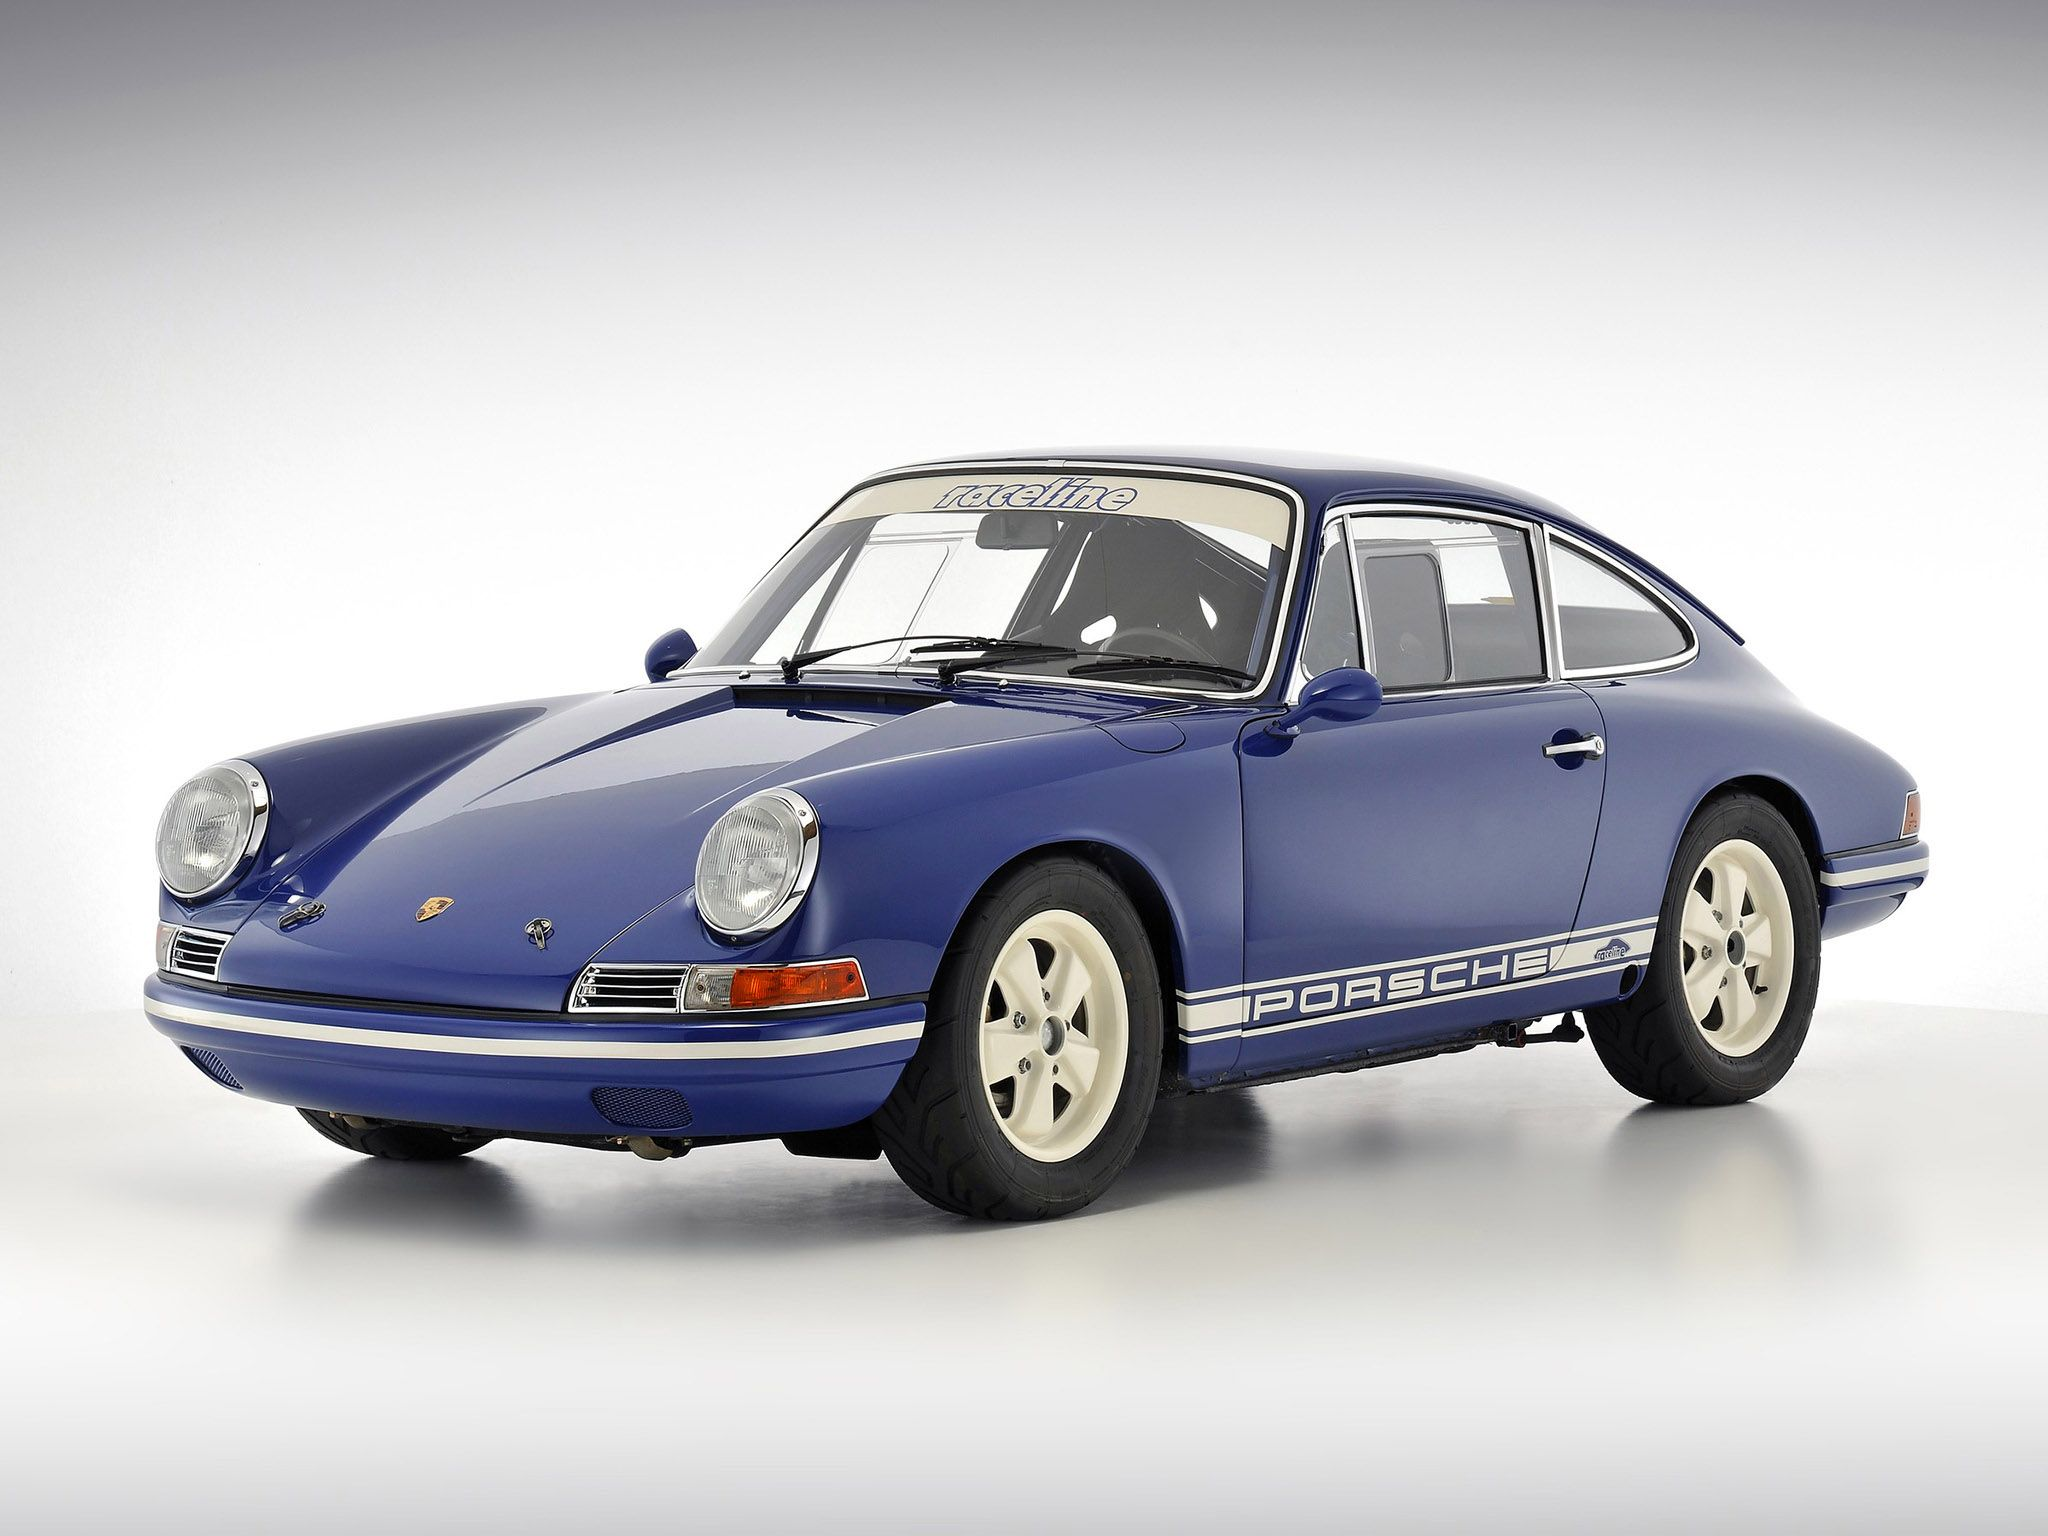 ls-model 911 25 1000+ images about Wonderful Wheelz on Pinterest | Volkswagen, Vw beetles and Aston martin rapide